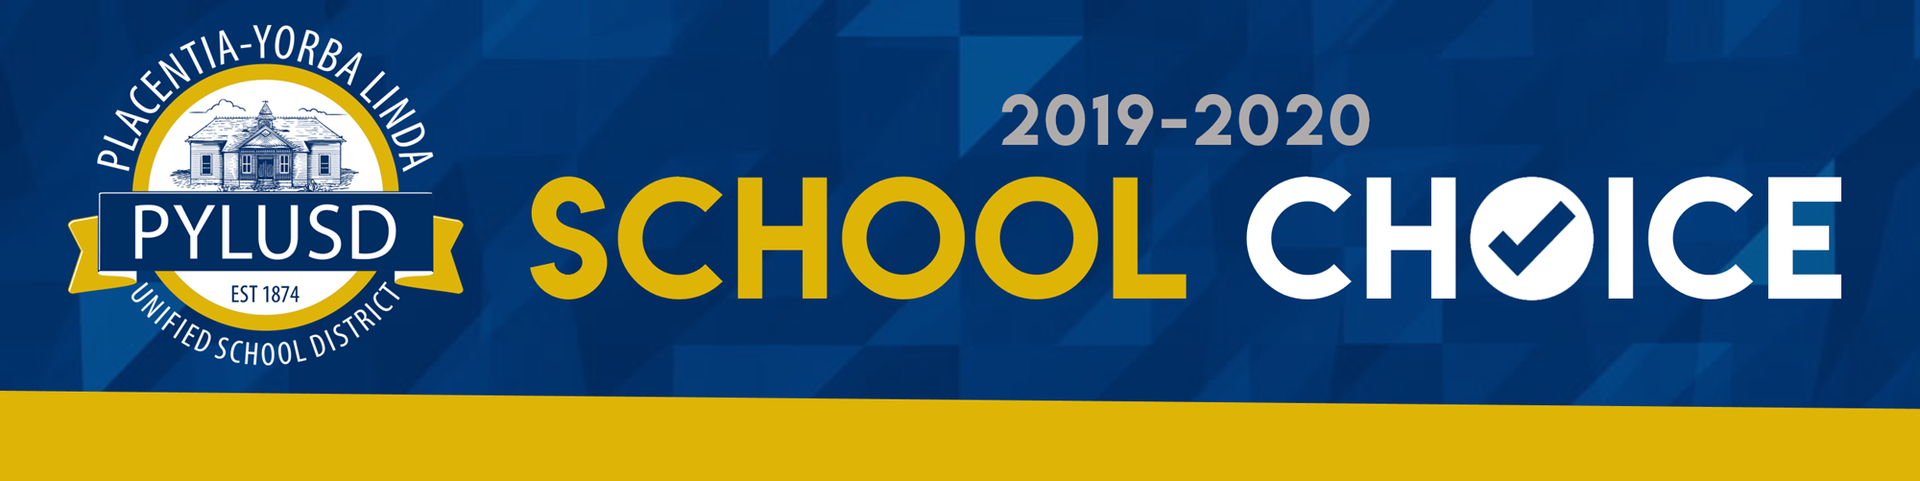 School Choice banner for PYLUSD.